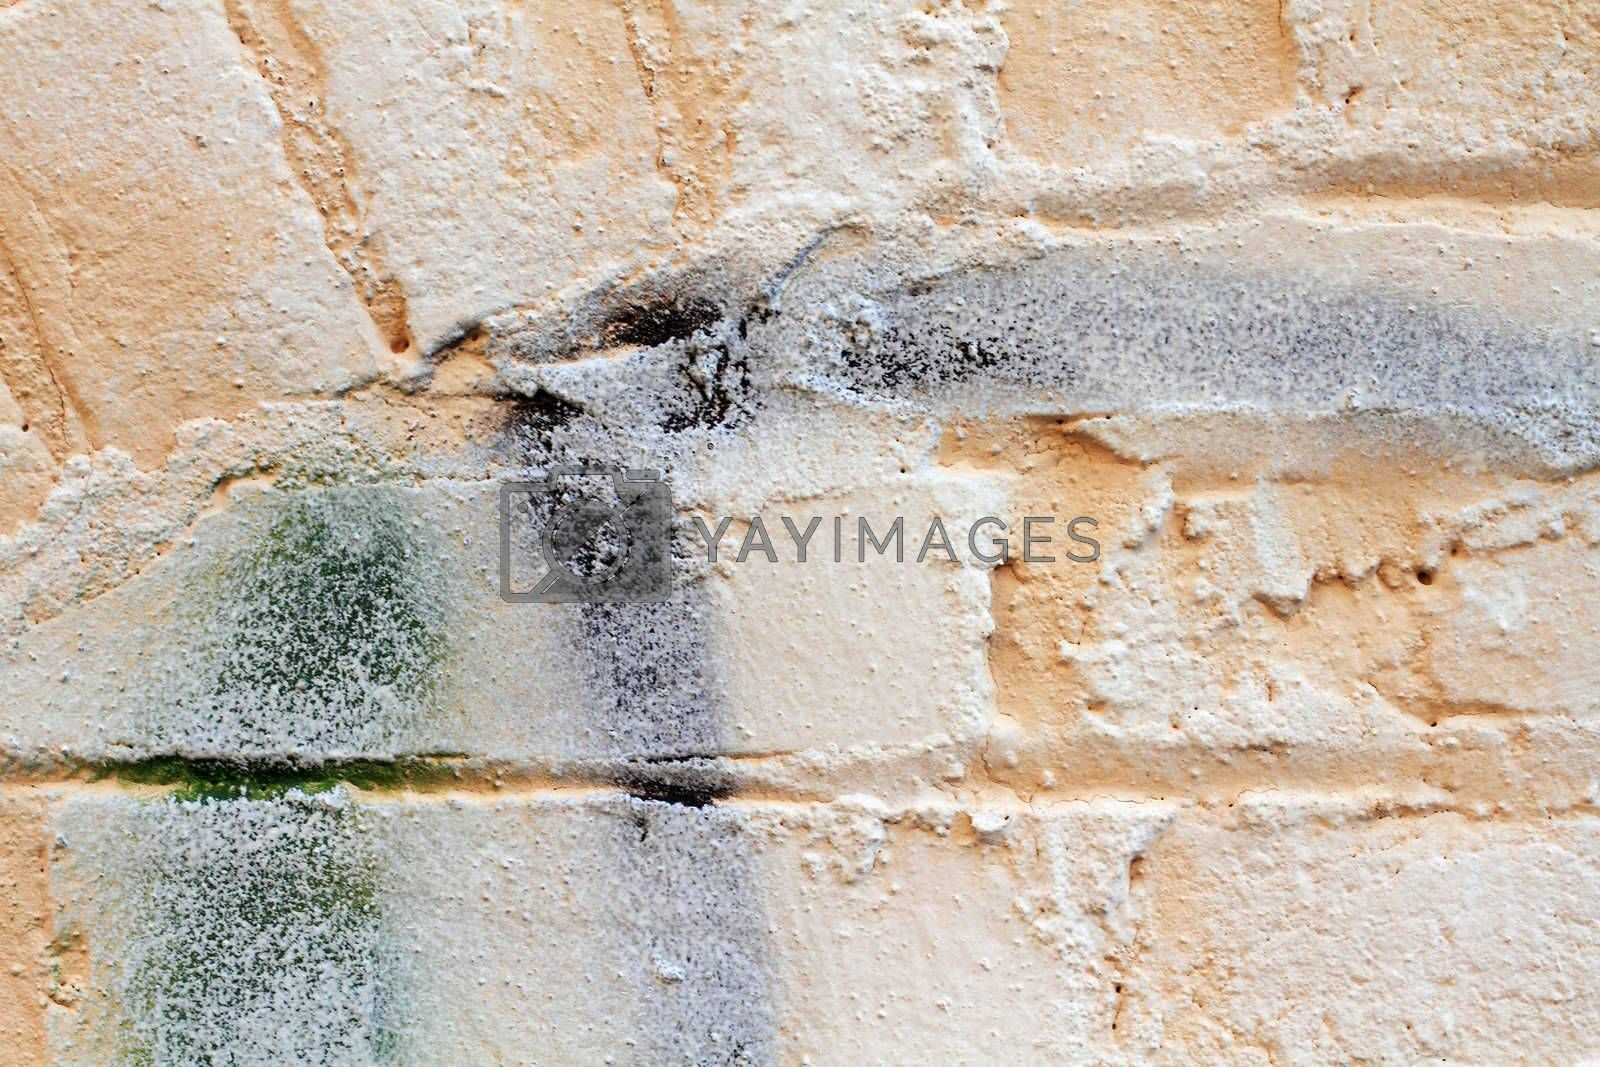 Royalty free image of Brick Wall by StephanieFrey